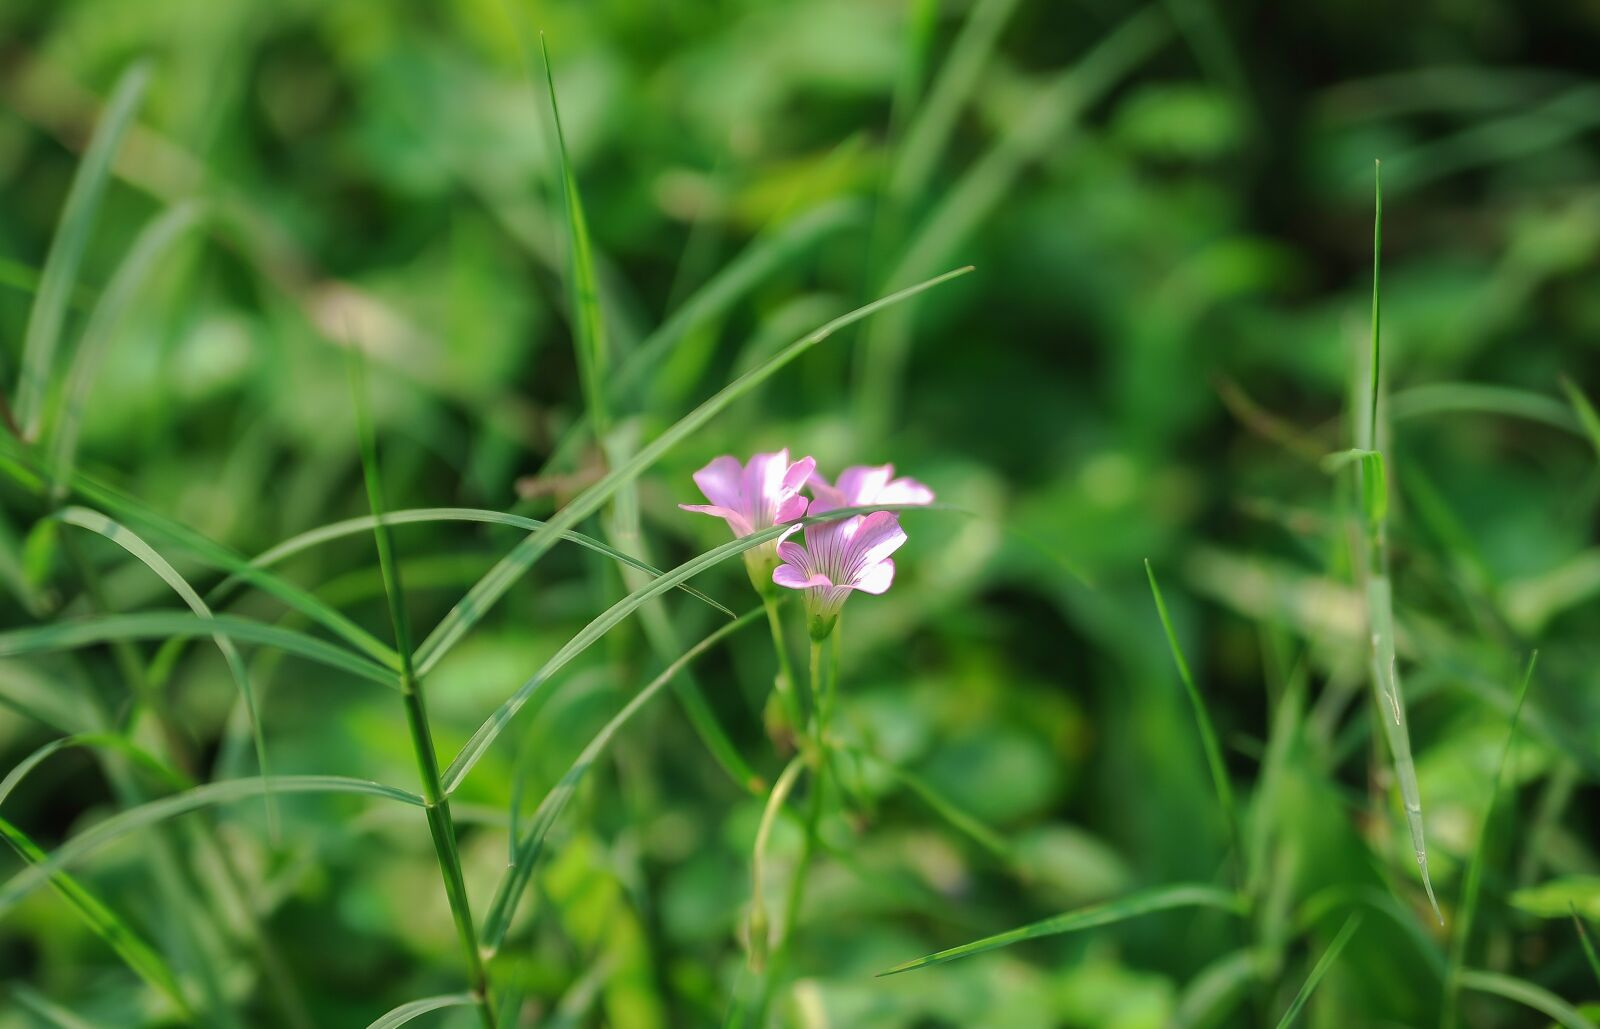 """Nikon D700 sample photo. """"Neck, flower, the leaves"""" photography"""